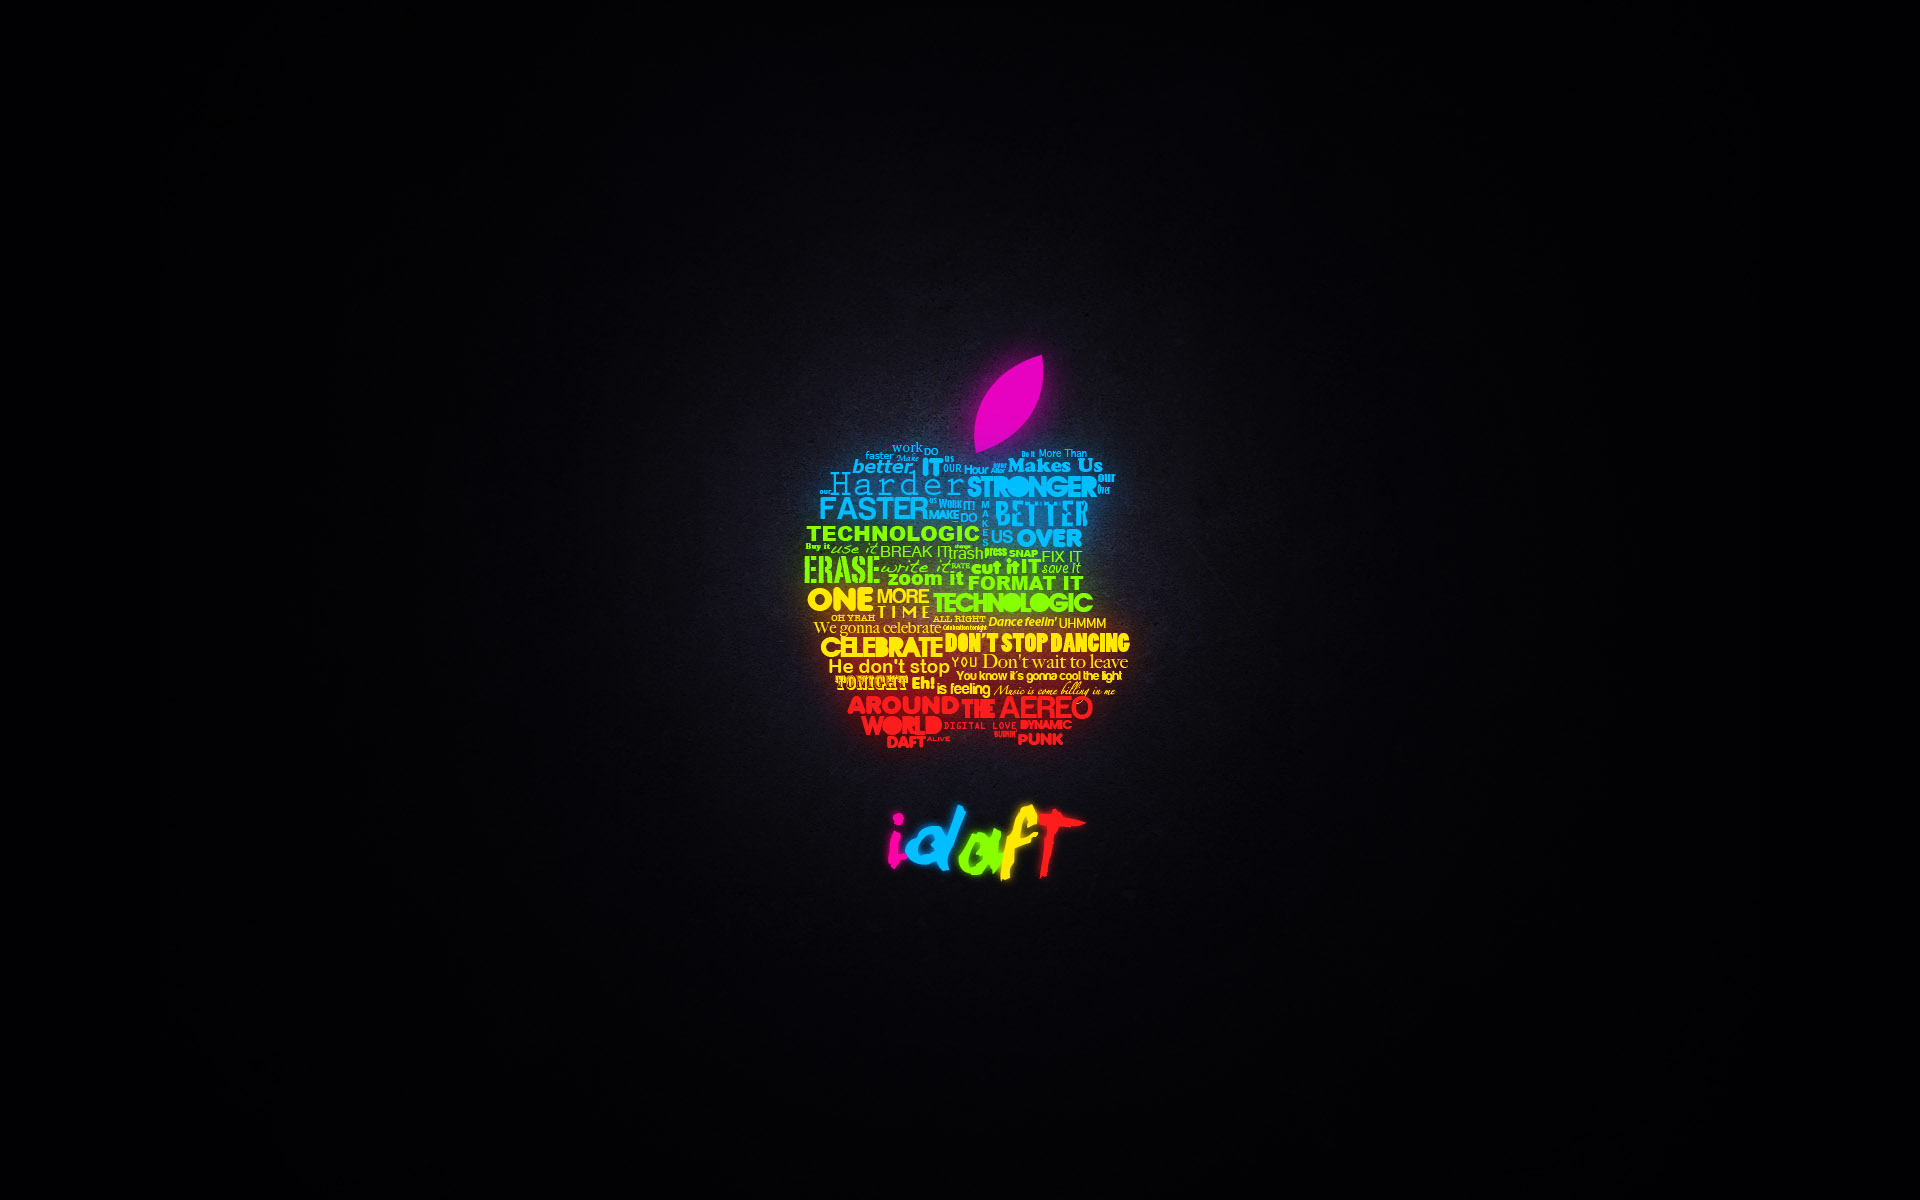 HD Apple wallpaper 16744